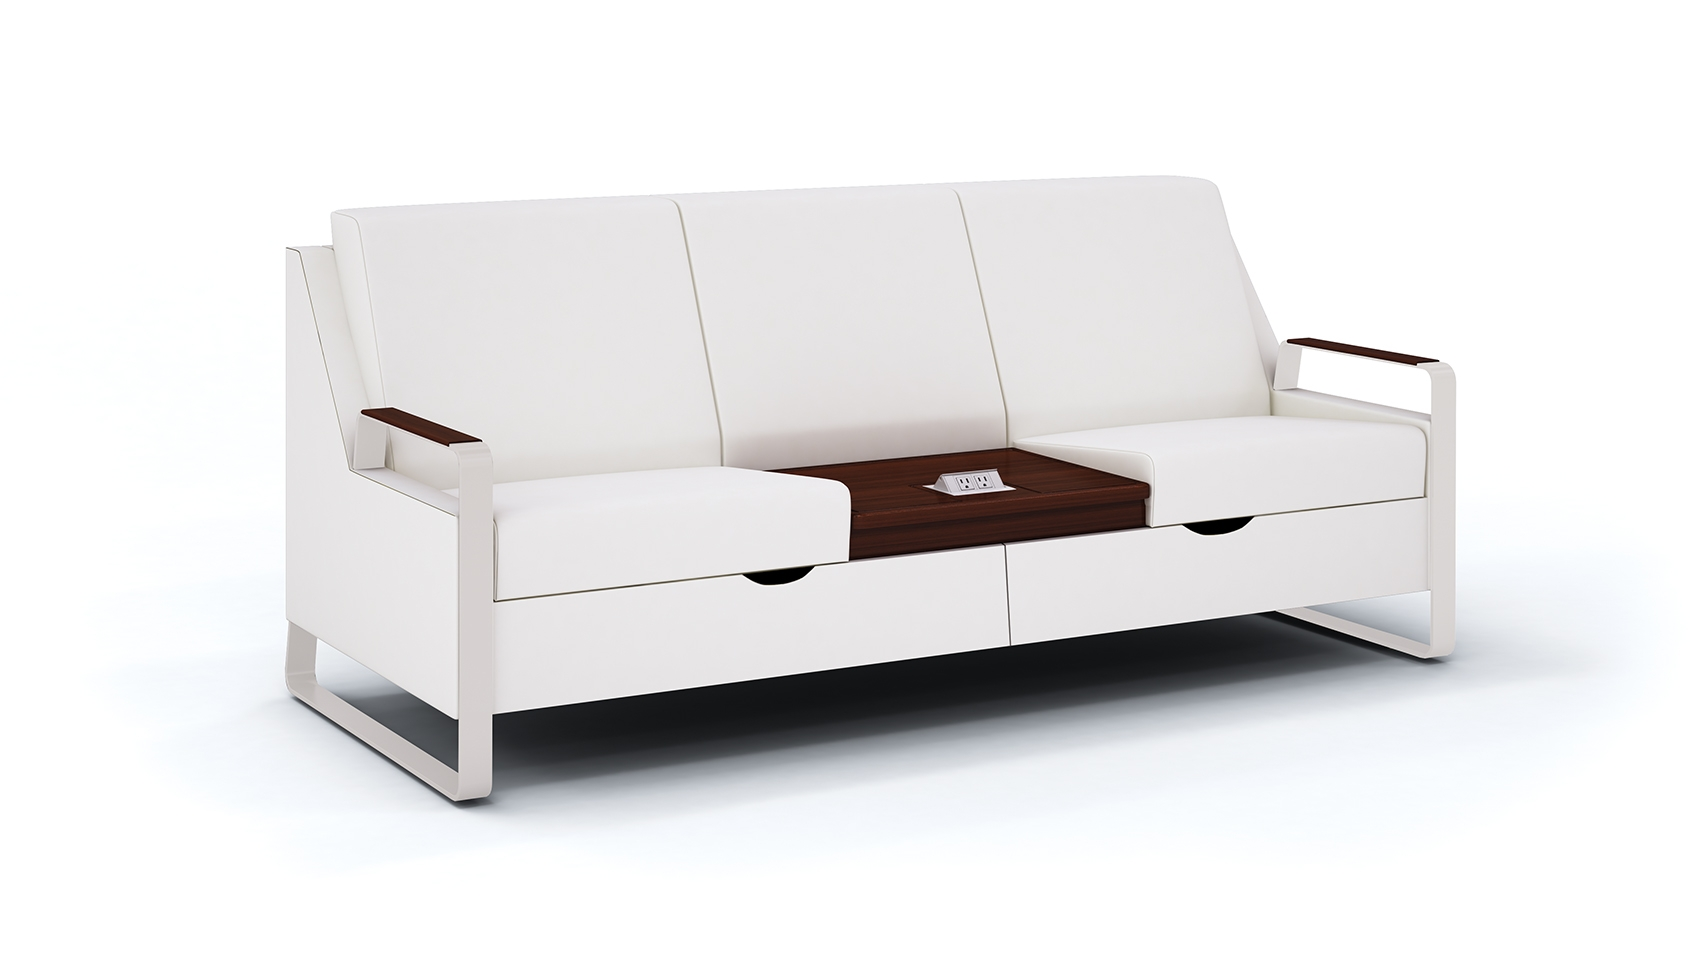 Superbe Reverie Is A Sleepover Sofa For Healthcare Spaces That Offers Supreme Form  And Function. Thoughtfully Designed With Multiple Arm Styles, ...